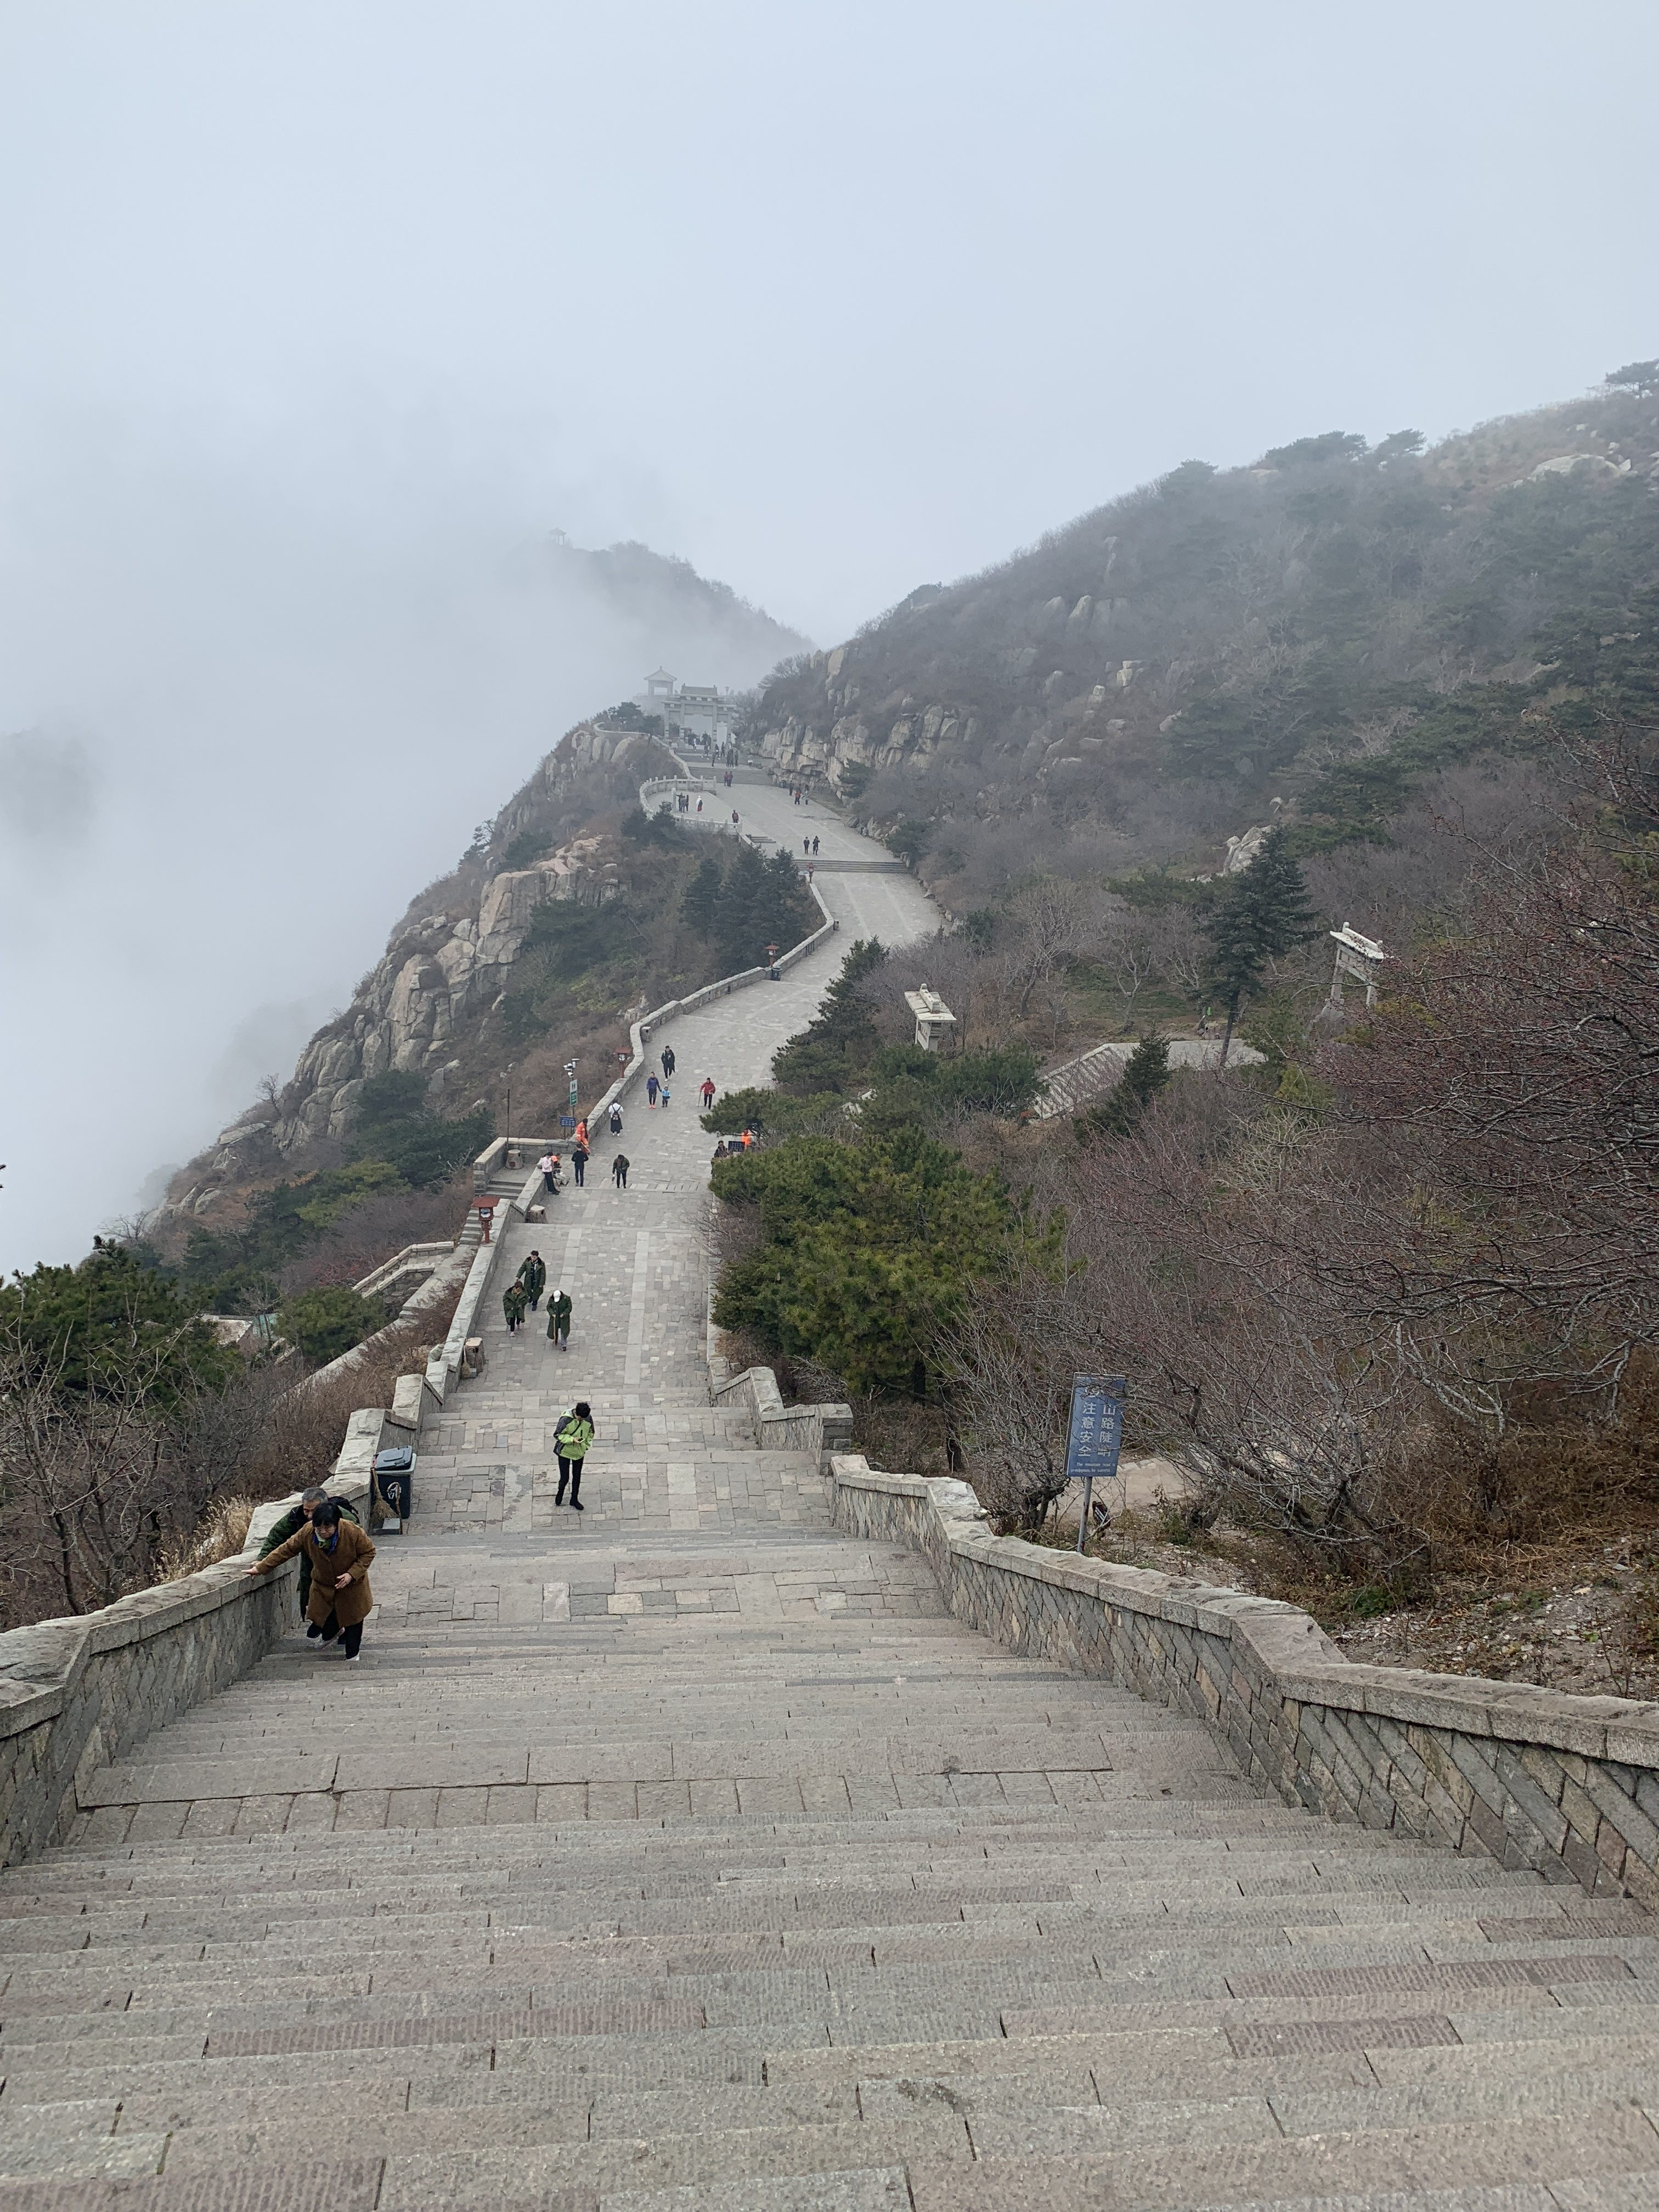 Shandong wall with people walking